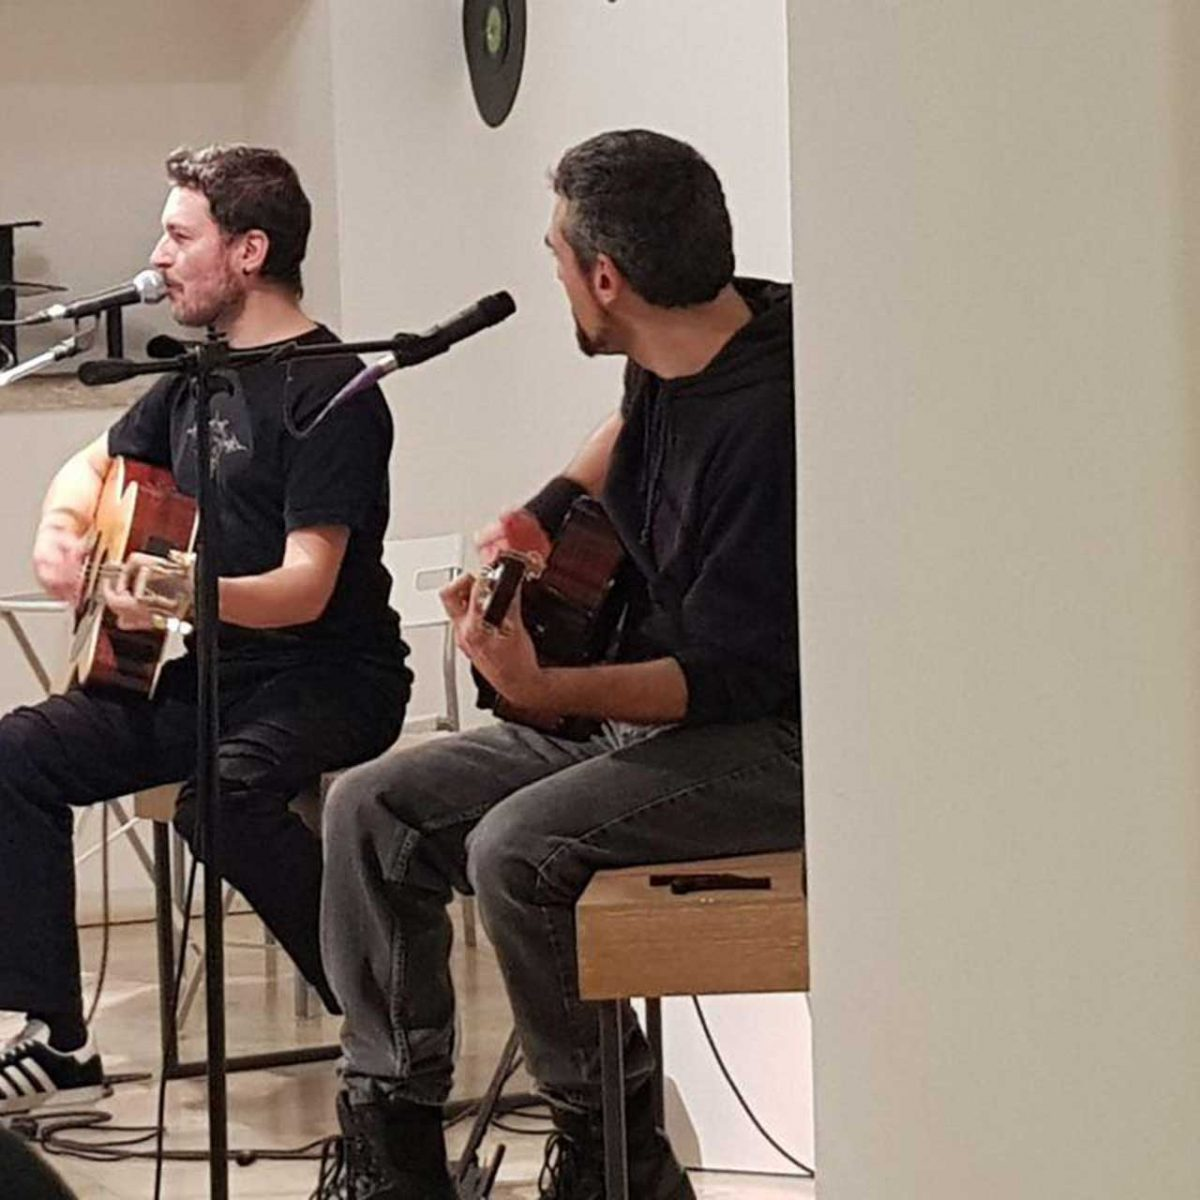 Absolute Beginners David Bowie Experience. Duo acustico Francesco Vilone e Gian Paolo Costantini